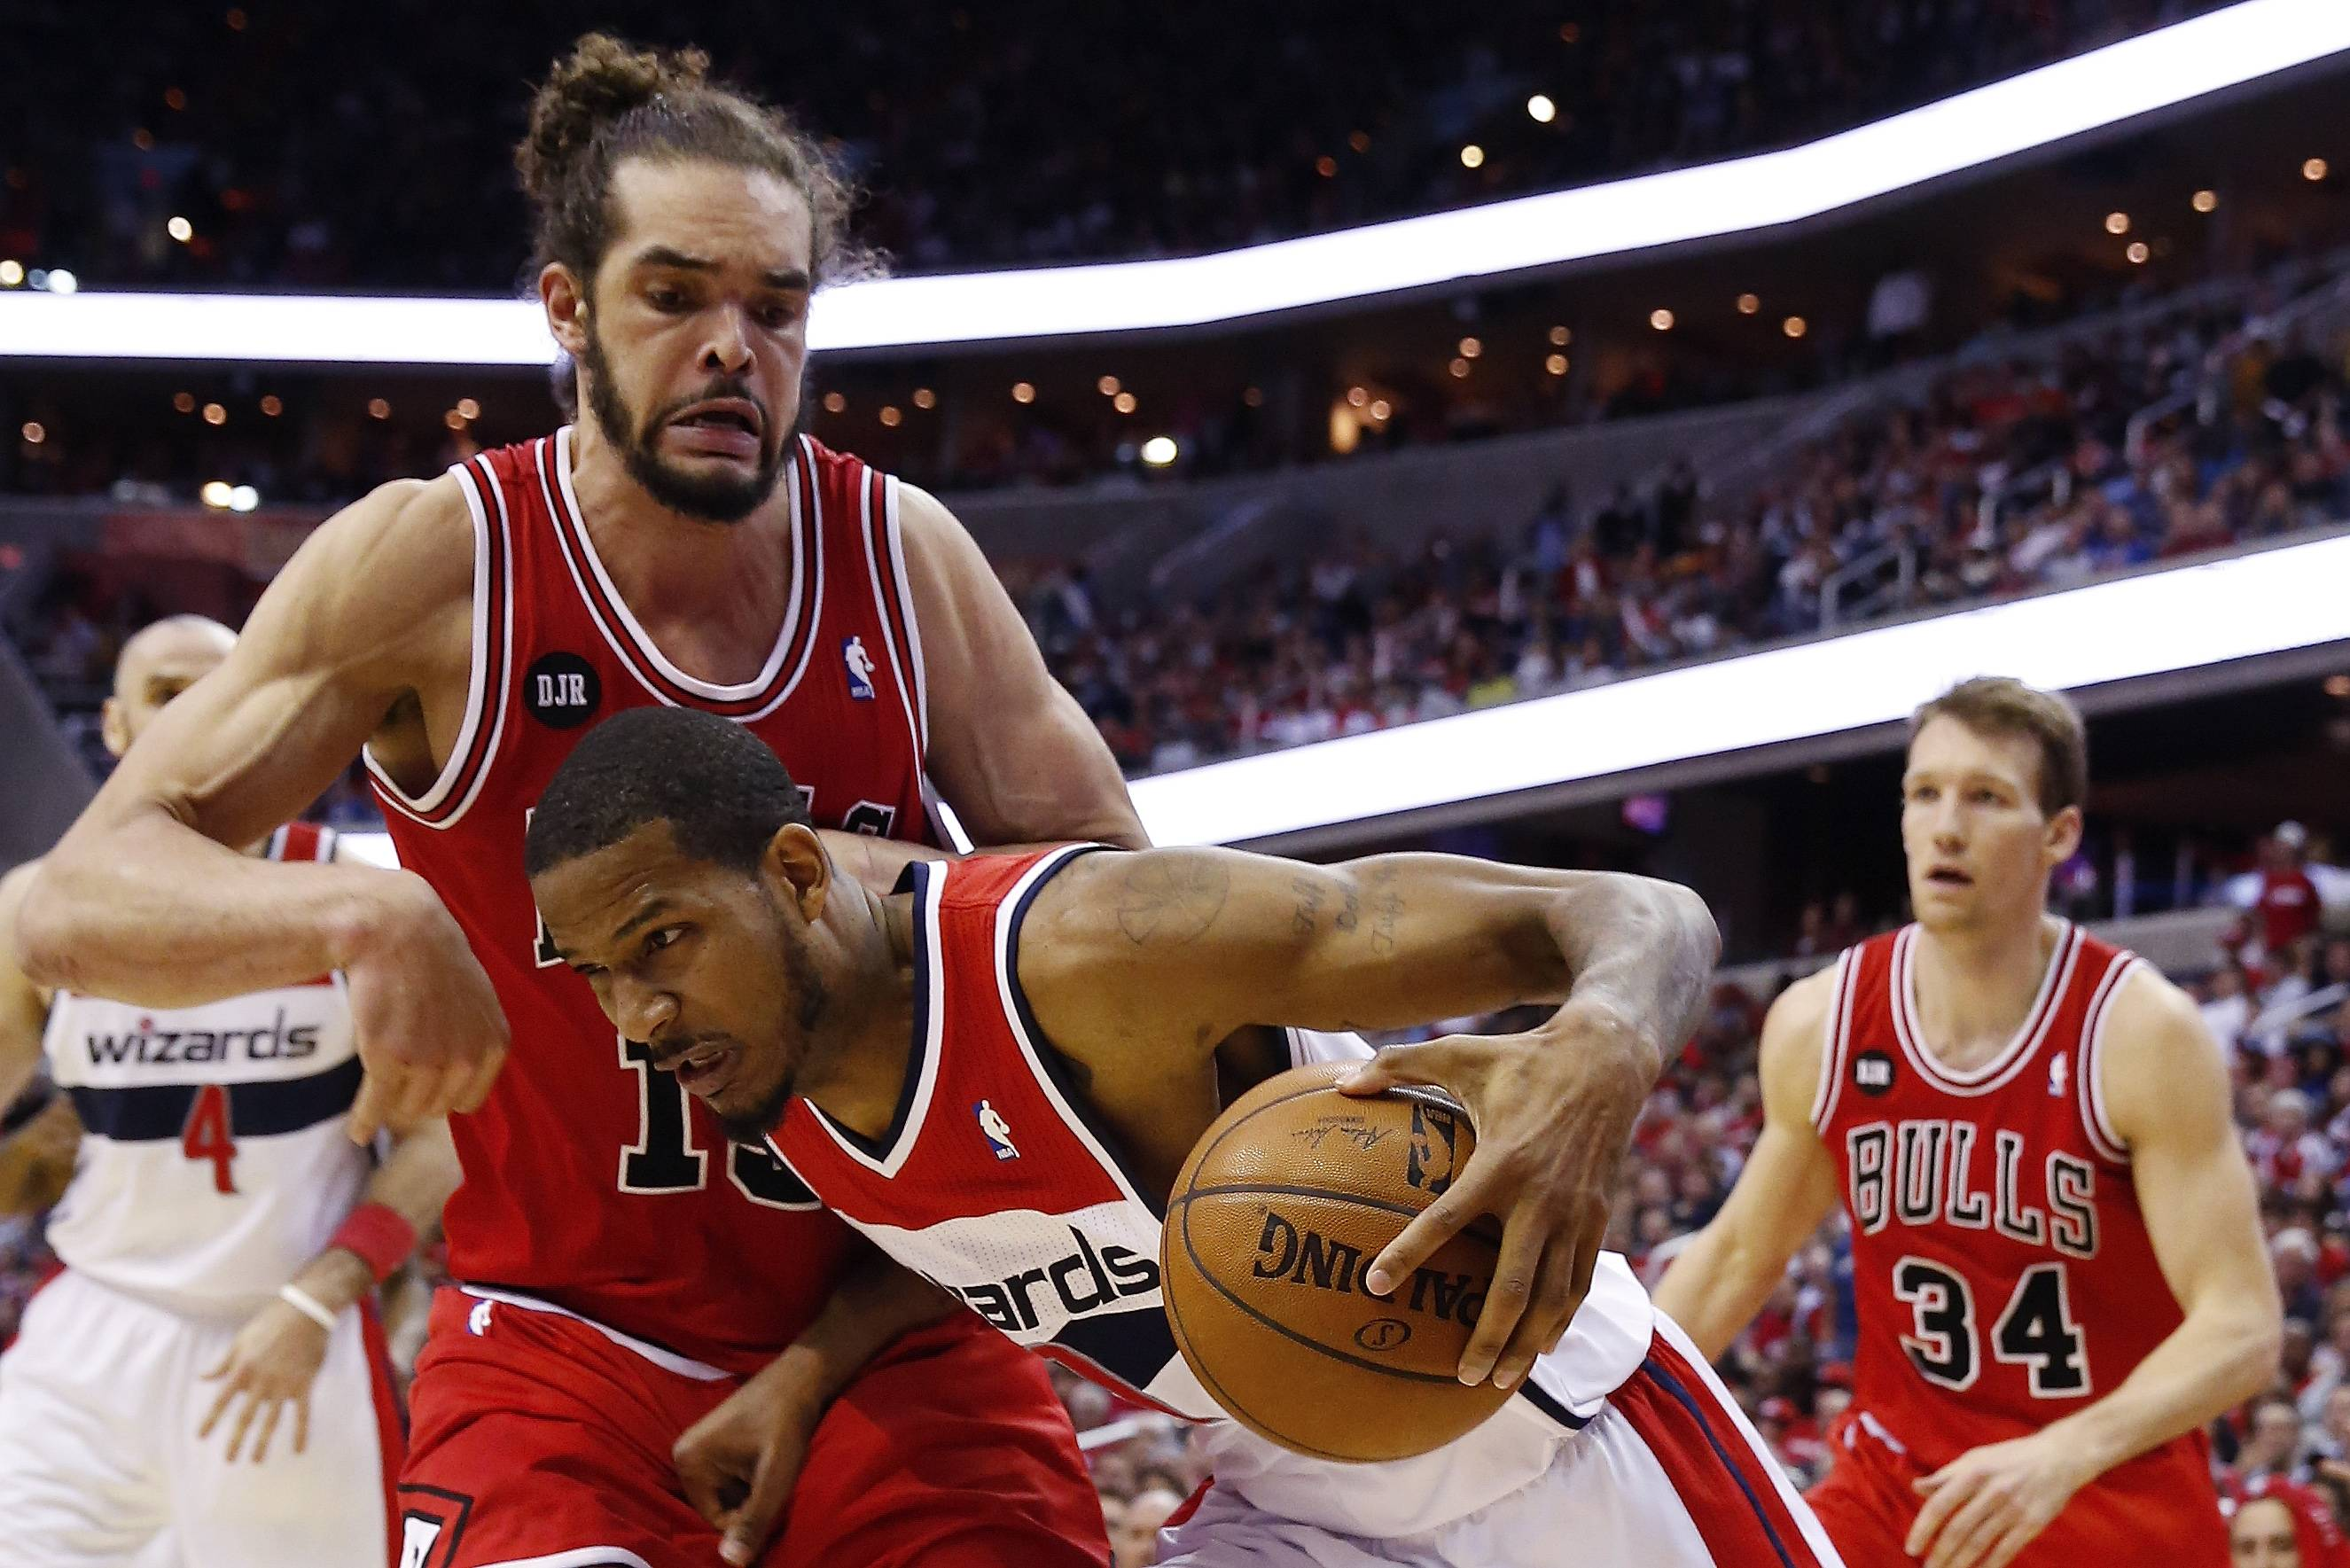 Wizards forward Trevor Ariza drives past Bulls center Joakim Noah during the second half Sunday. Ariza scored 30 points as Washington took a 3-1 series lead.